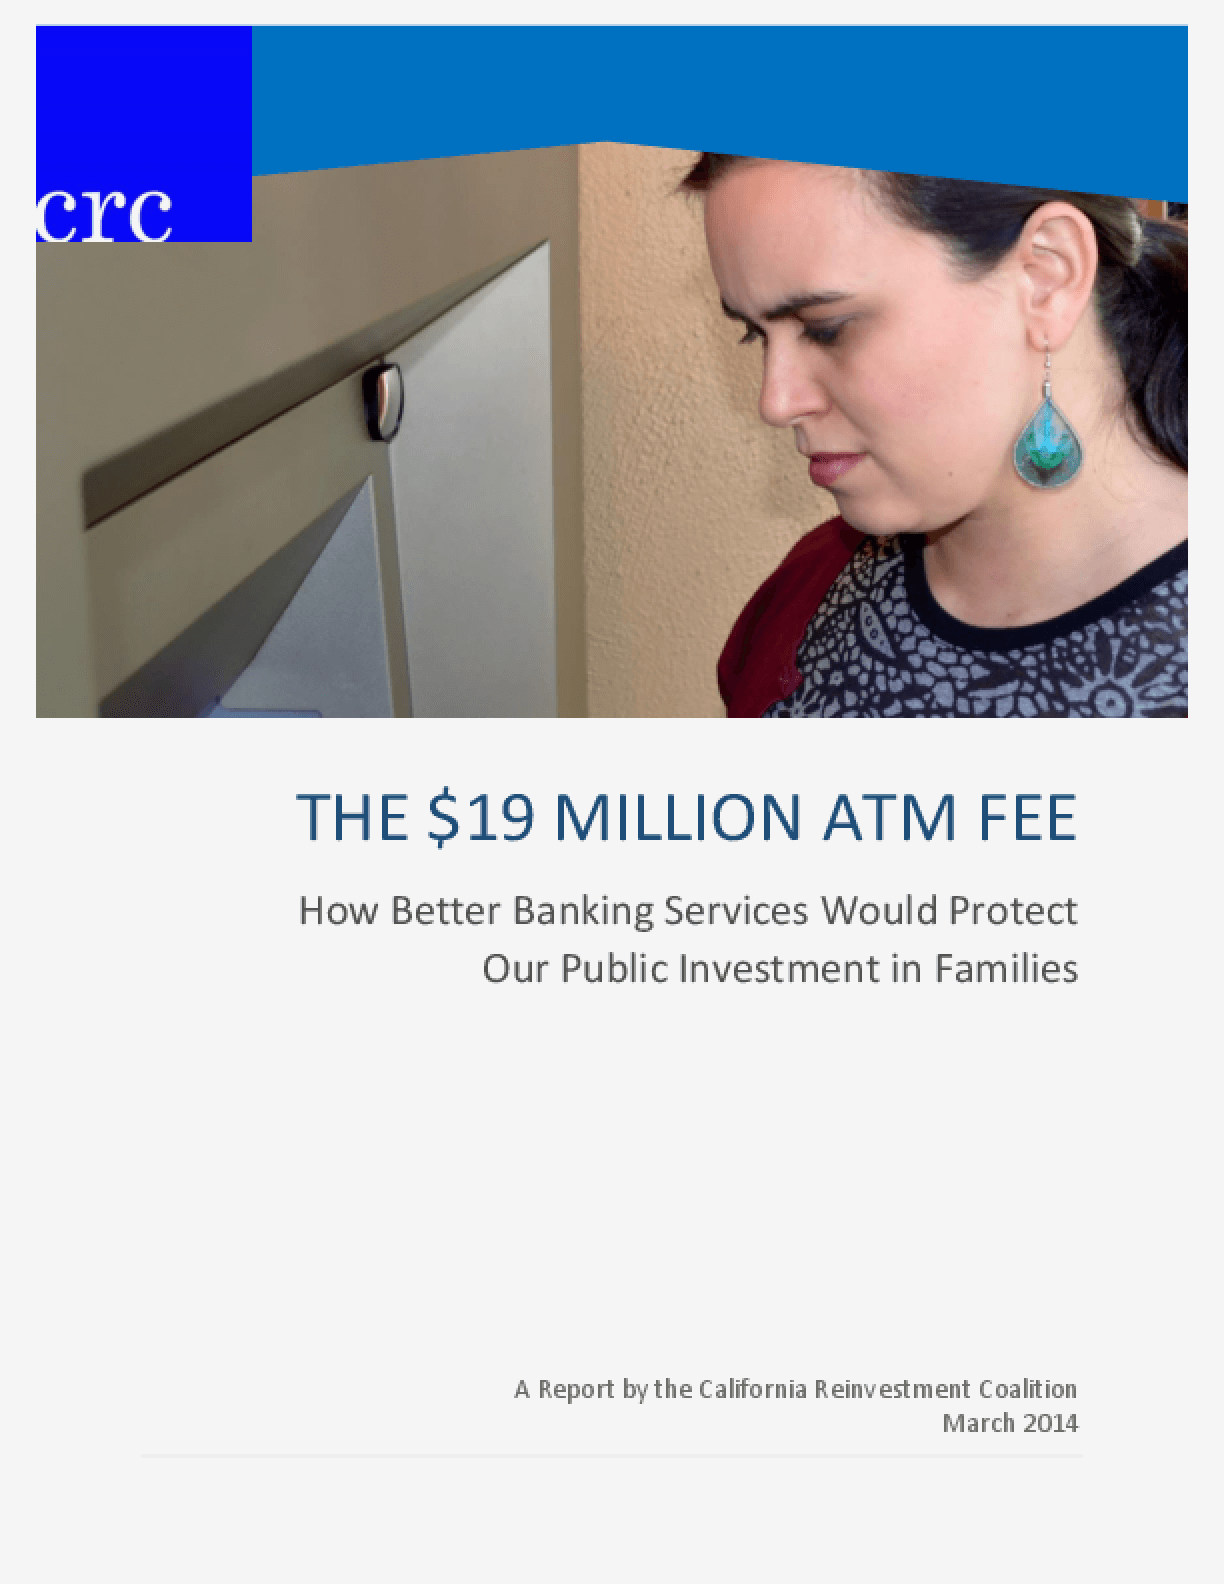 The $19 Million ATM Fee: How Better Banking Services Would Protect Our Public Investment in Families